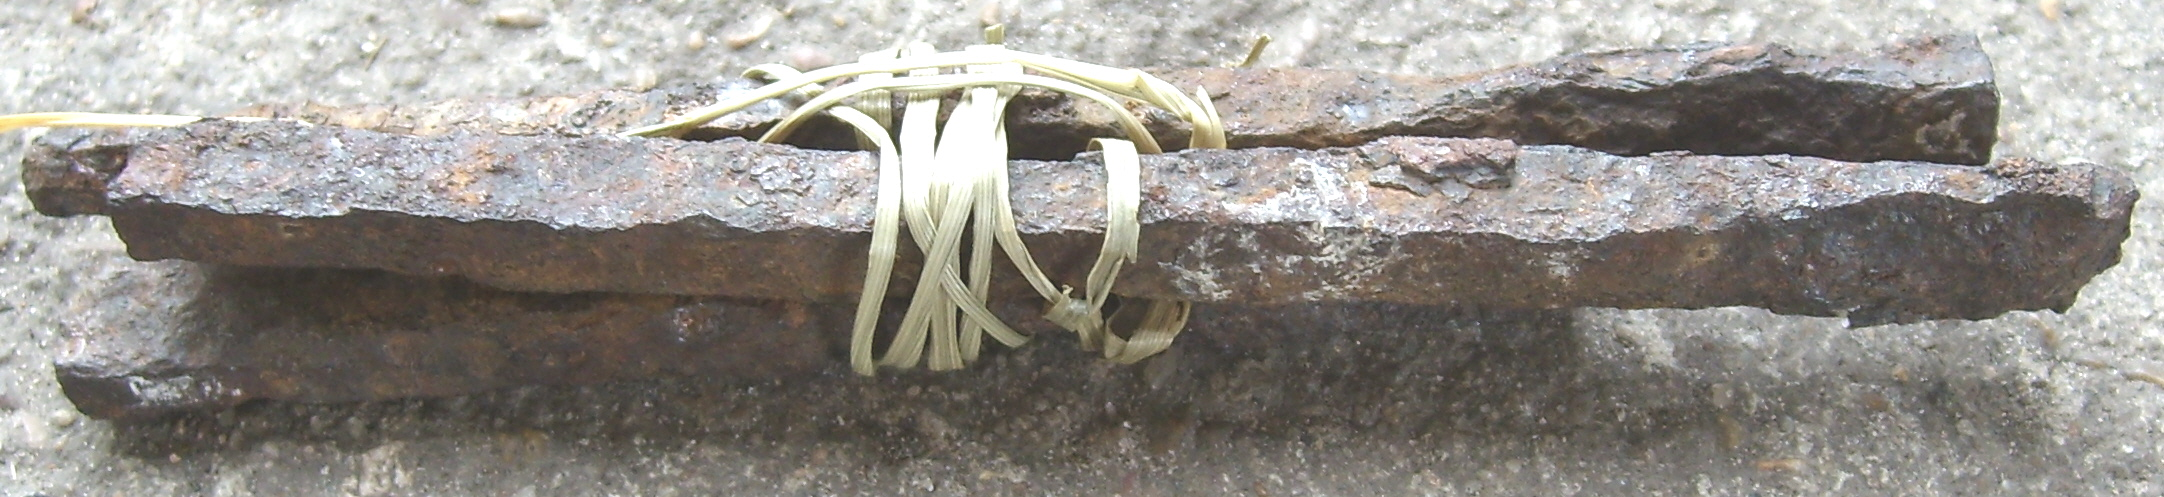 Enlarged view of nails from the house on the Michael Korns, Sr. farm.